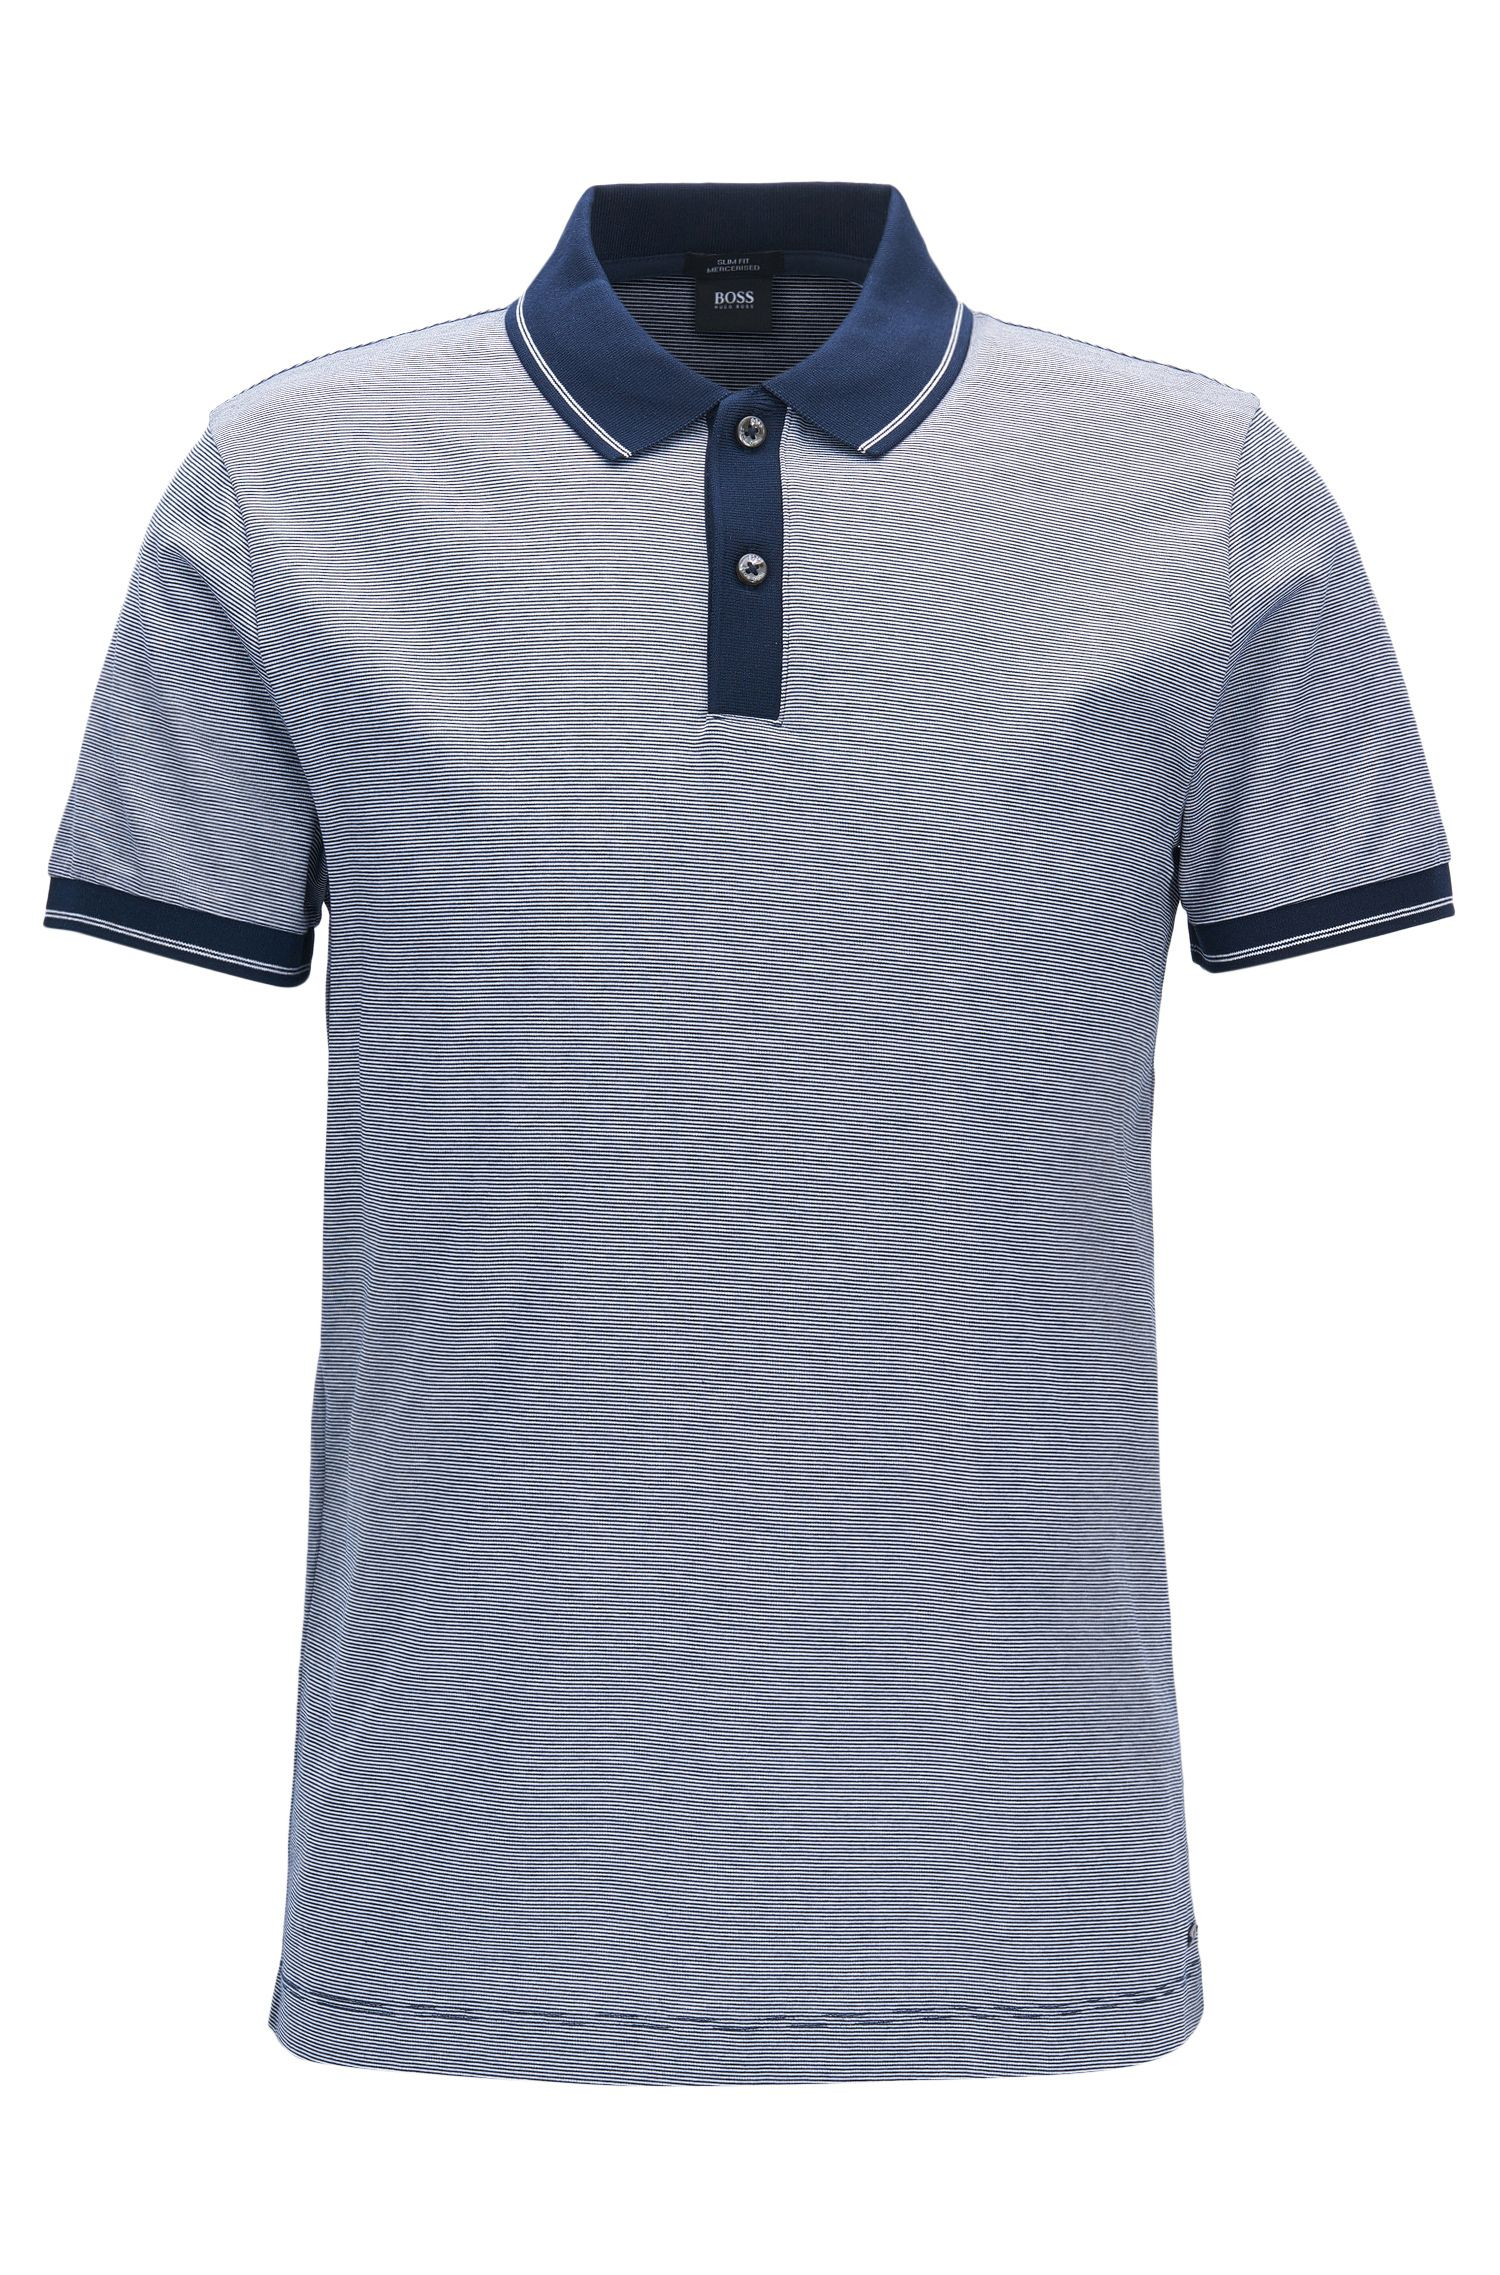 Mercerized Cotton Polo Shirt, Slim Fit | Phillipson, Dark Blue